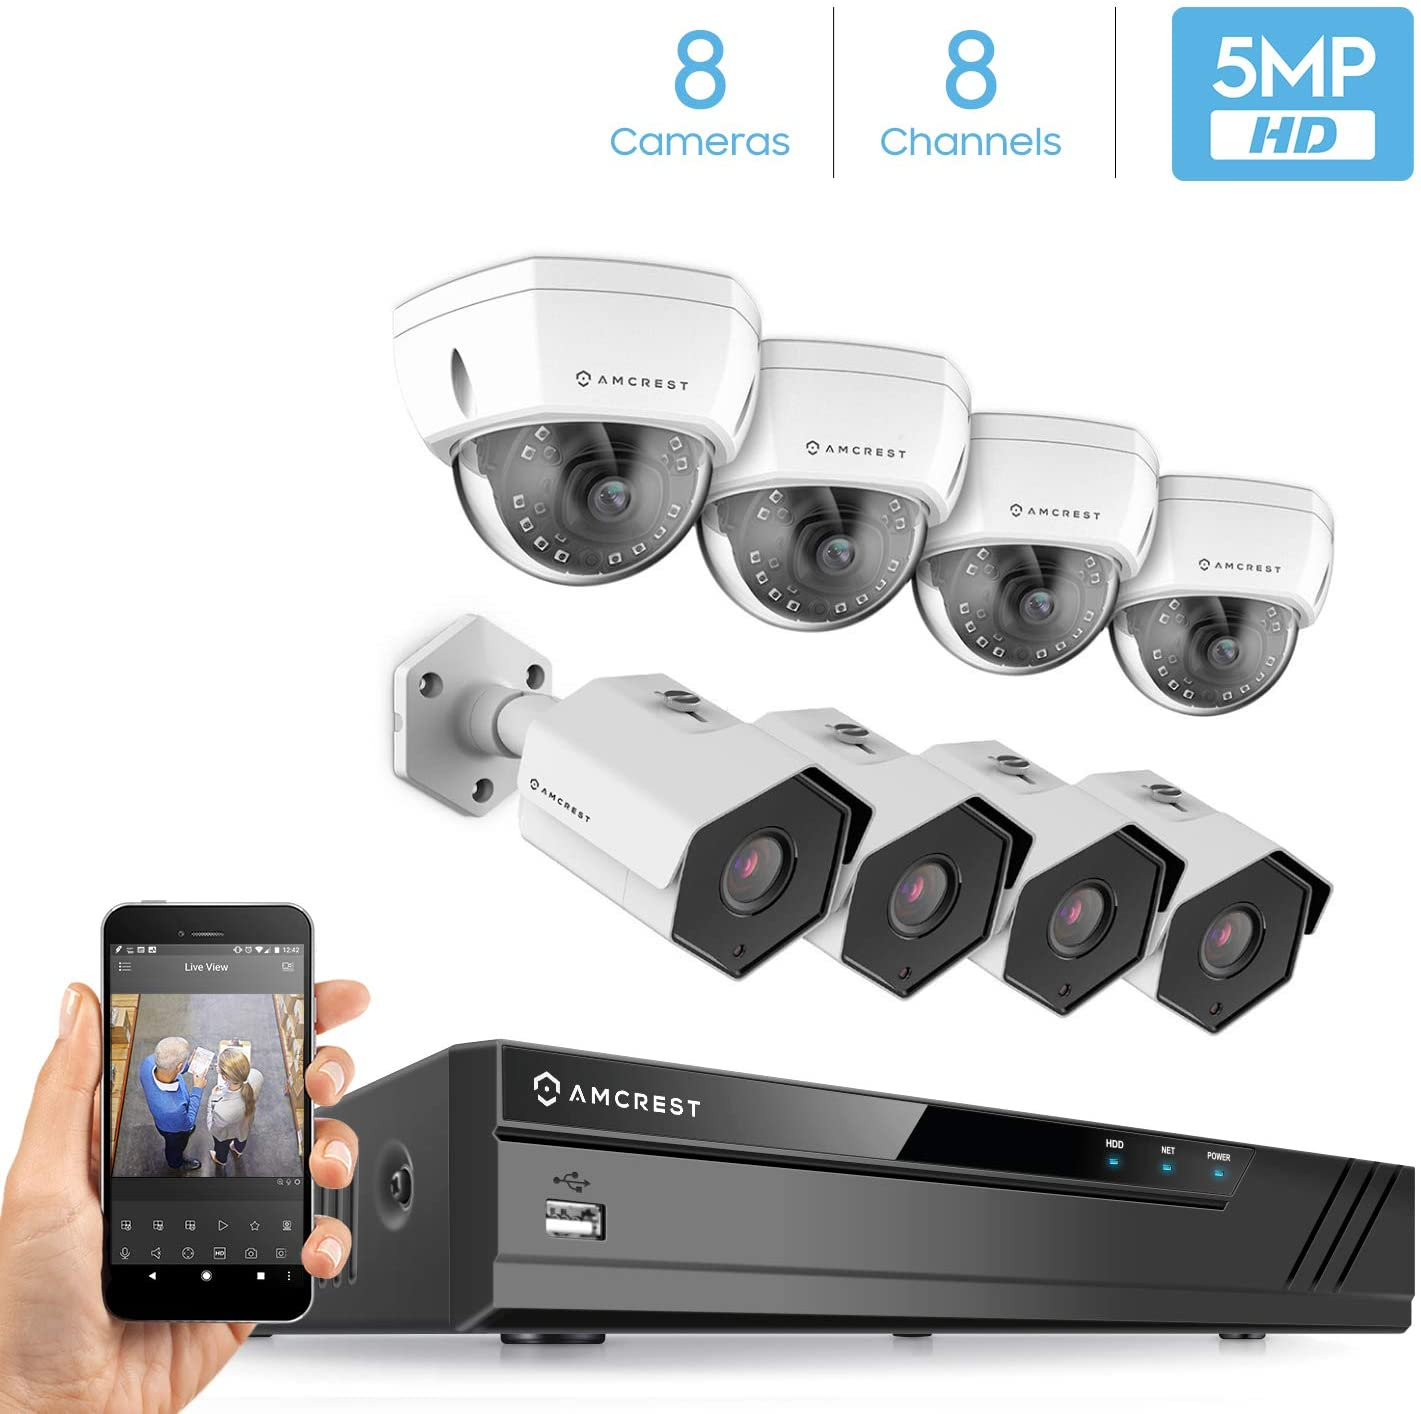 Amcrest 5MP Security Camera System, 4K 8CH PoE NVR, (8) x 5-Megapixel IP67 Weatherproof Metal Bullet & Dome POE IP Cameras, Hard Drive Not Included, NV4108E-IP5M-1173EW4-IP5M-1176EW4 (White)